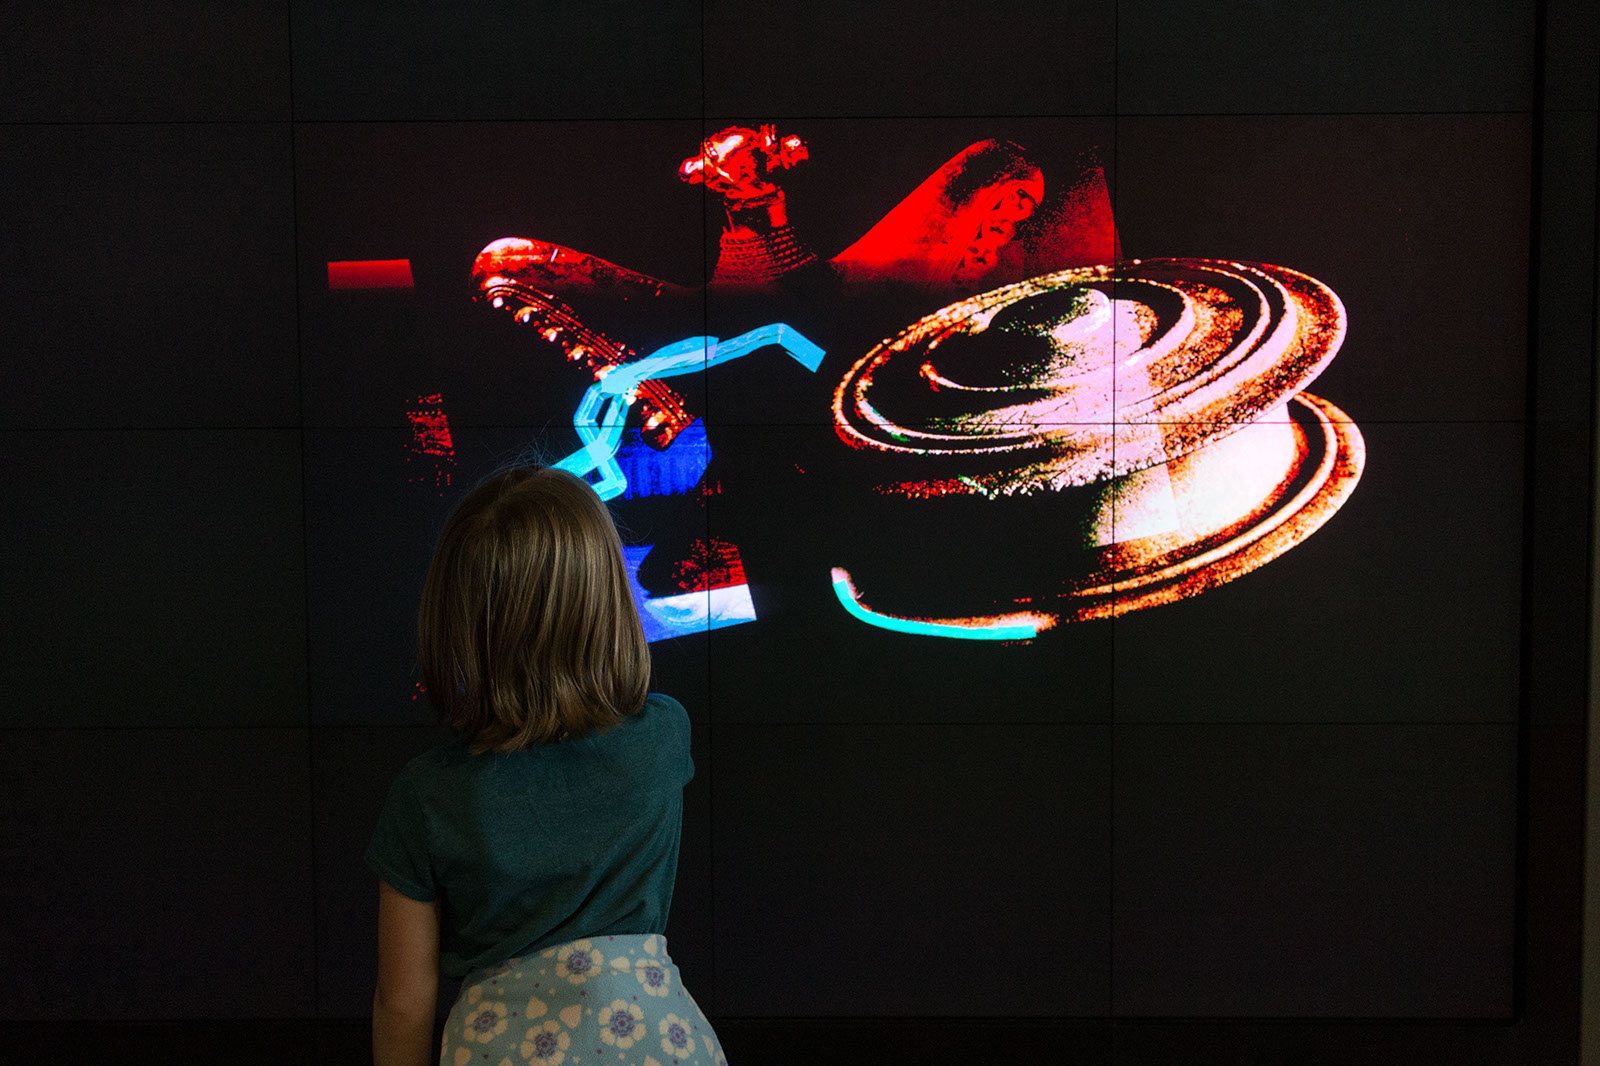 person stands in front of large screen